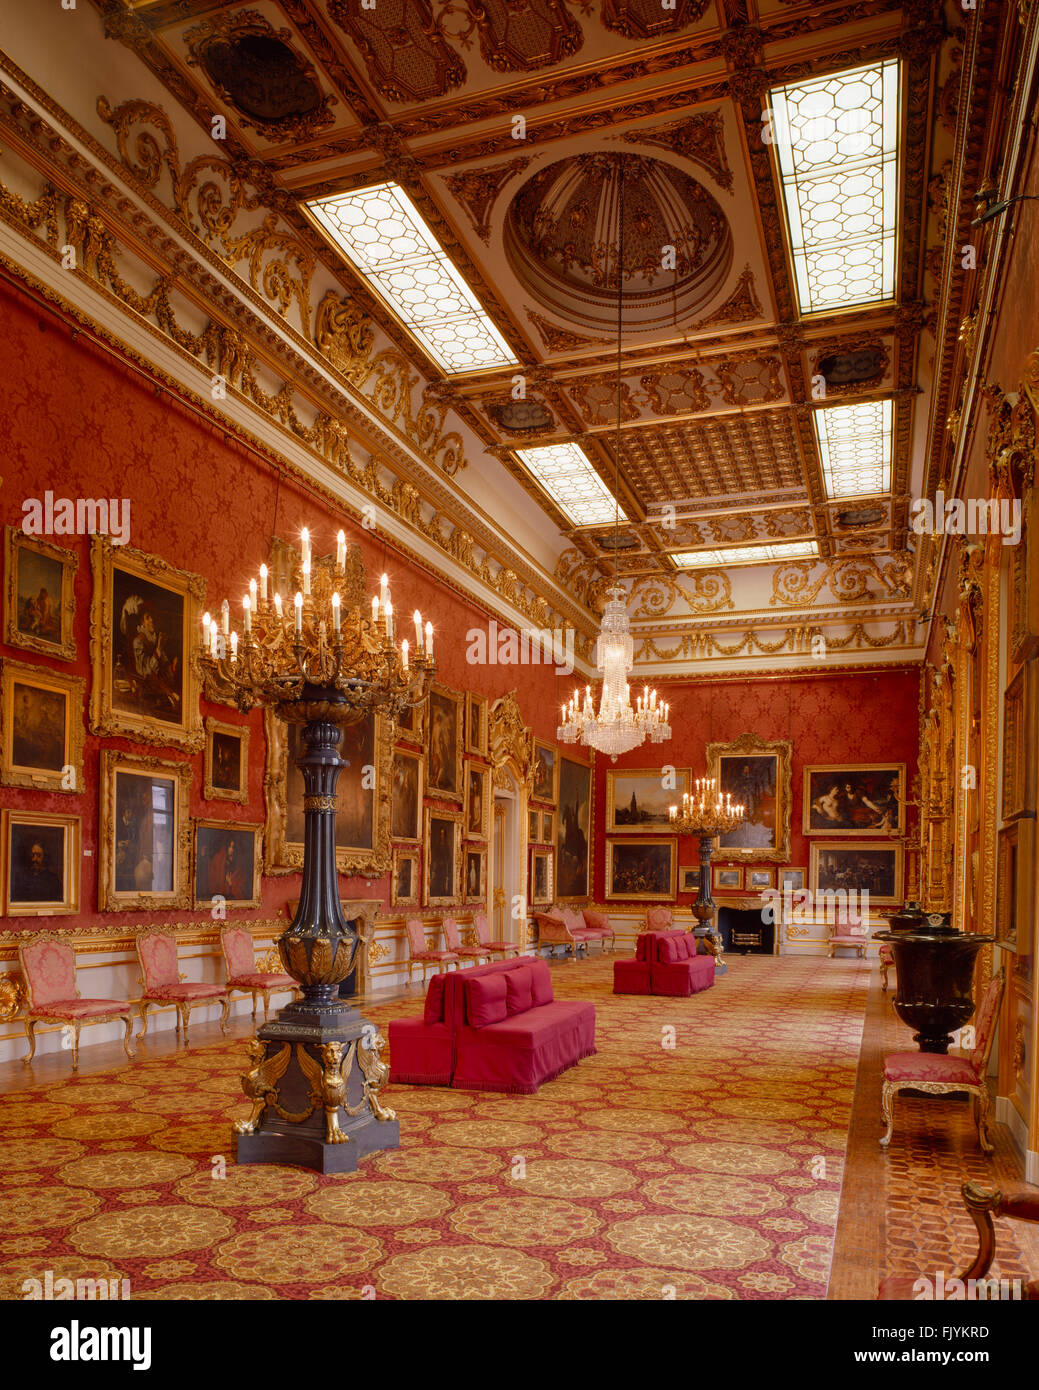 APSLEY HOUSE, London. View of the Waterloo Gallery. - Stock Image